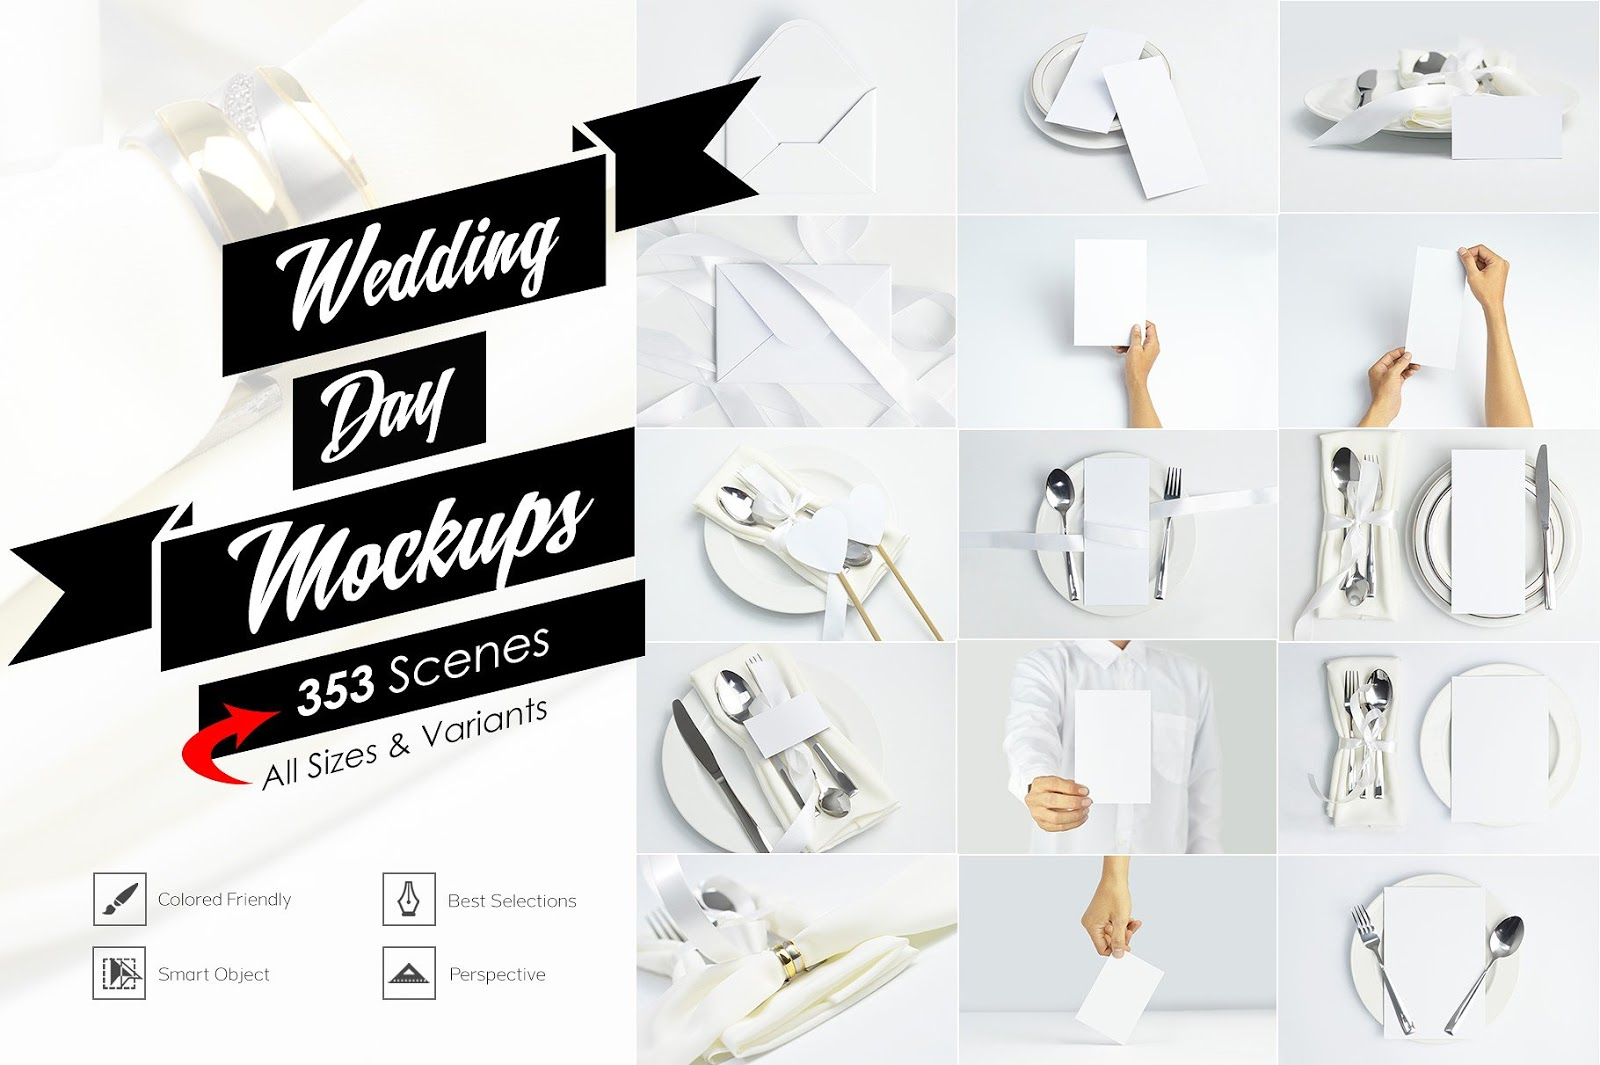 Wedding Day Full Pack Mockups